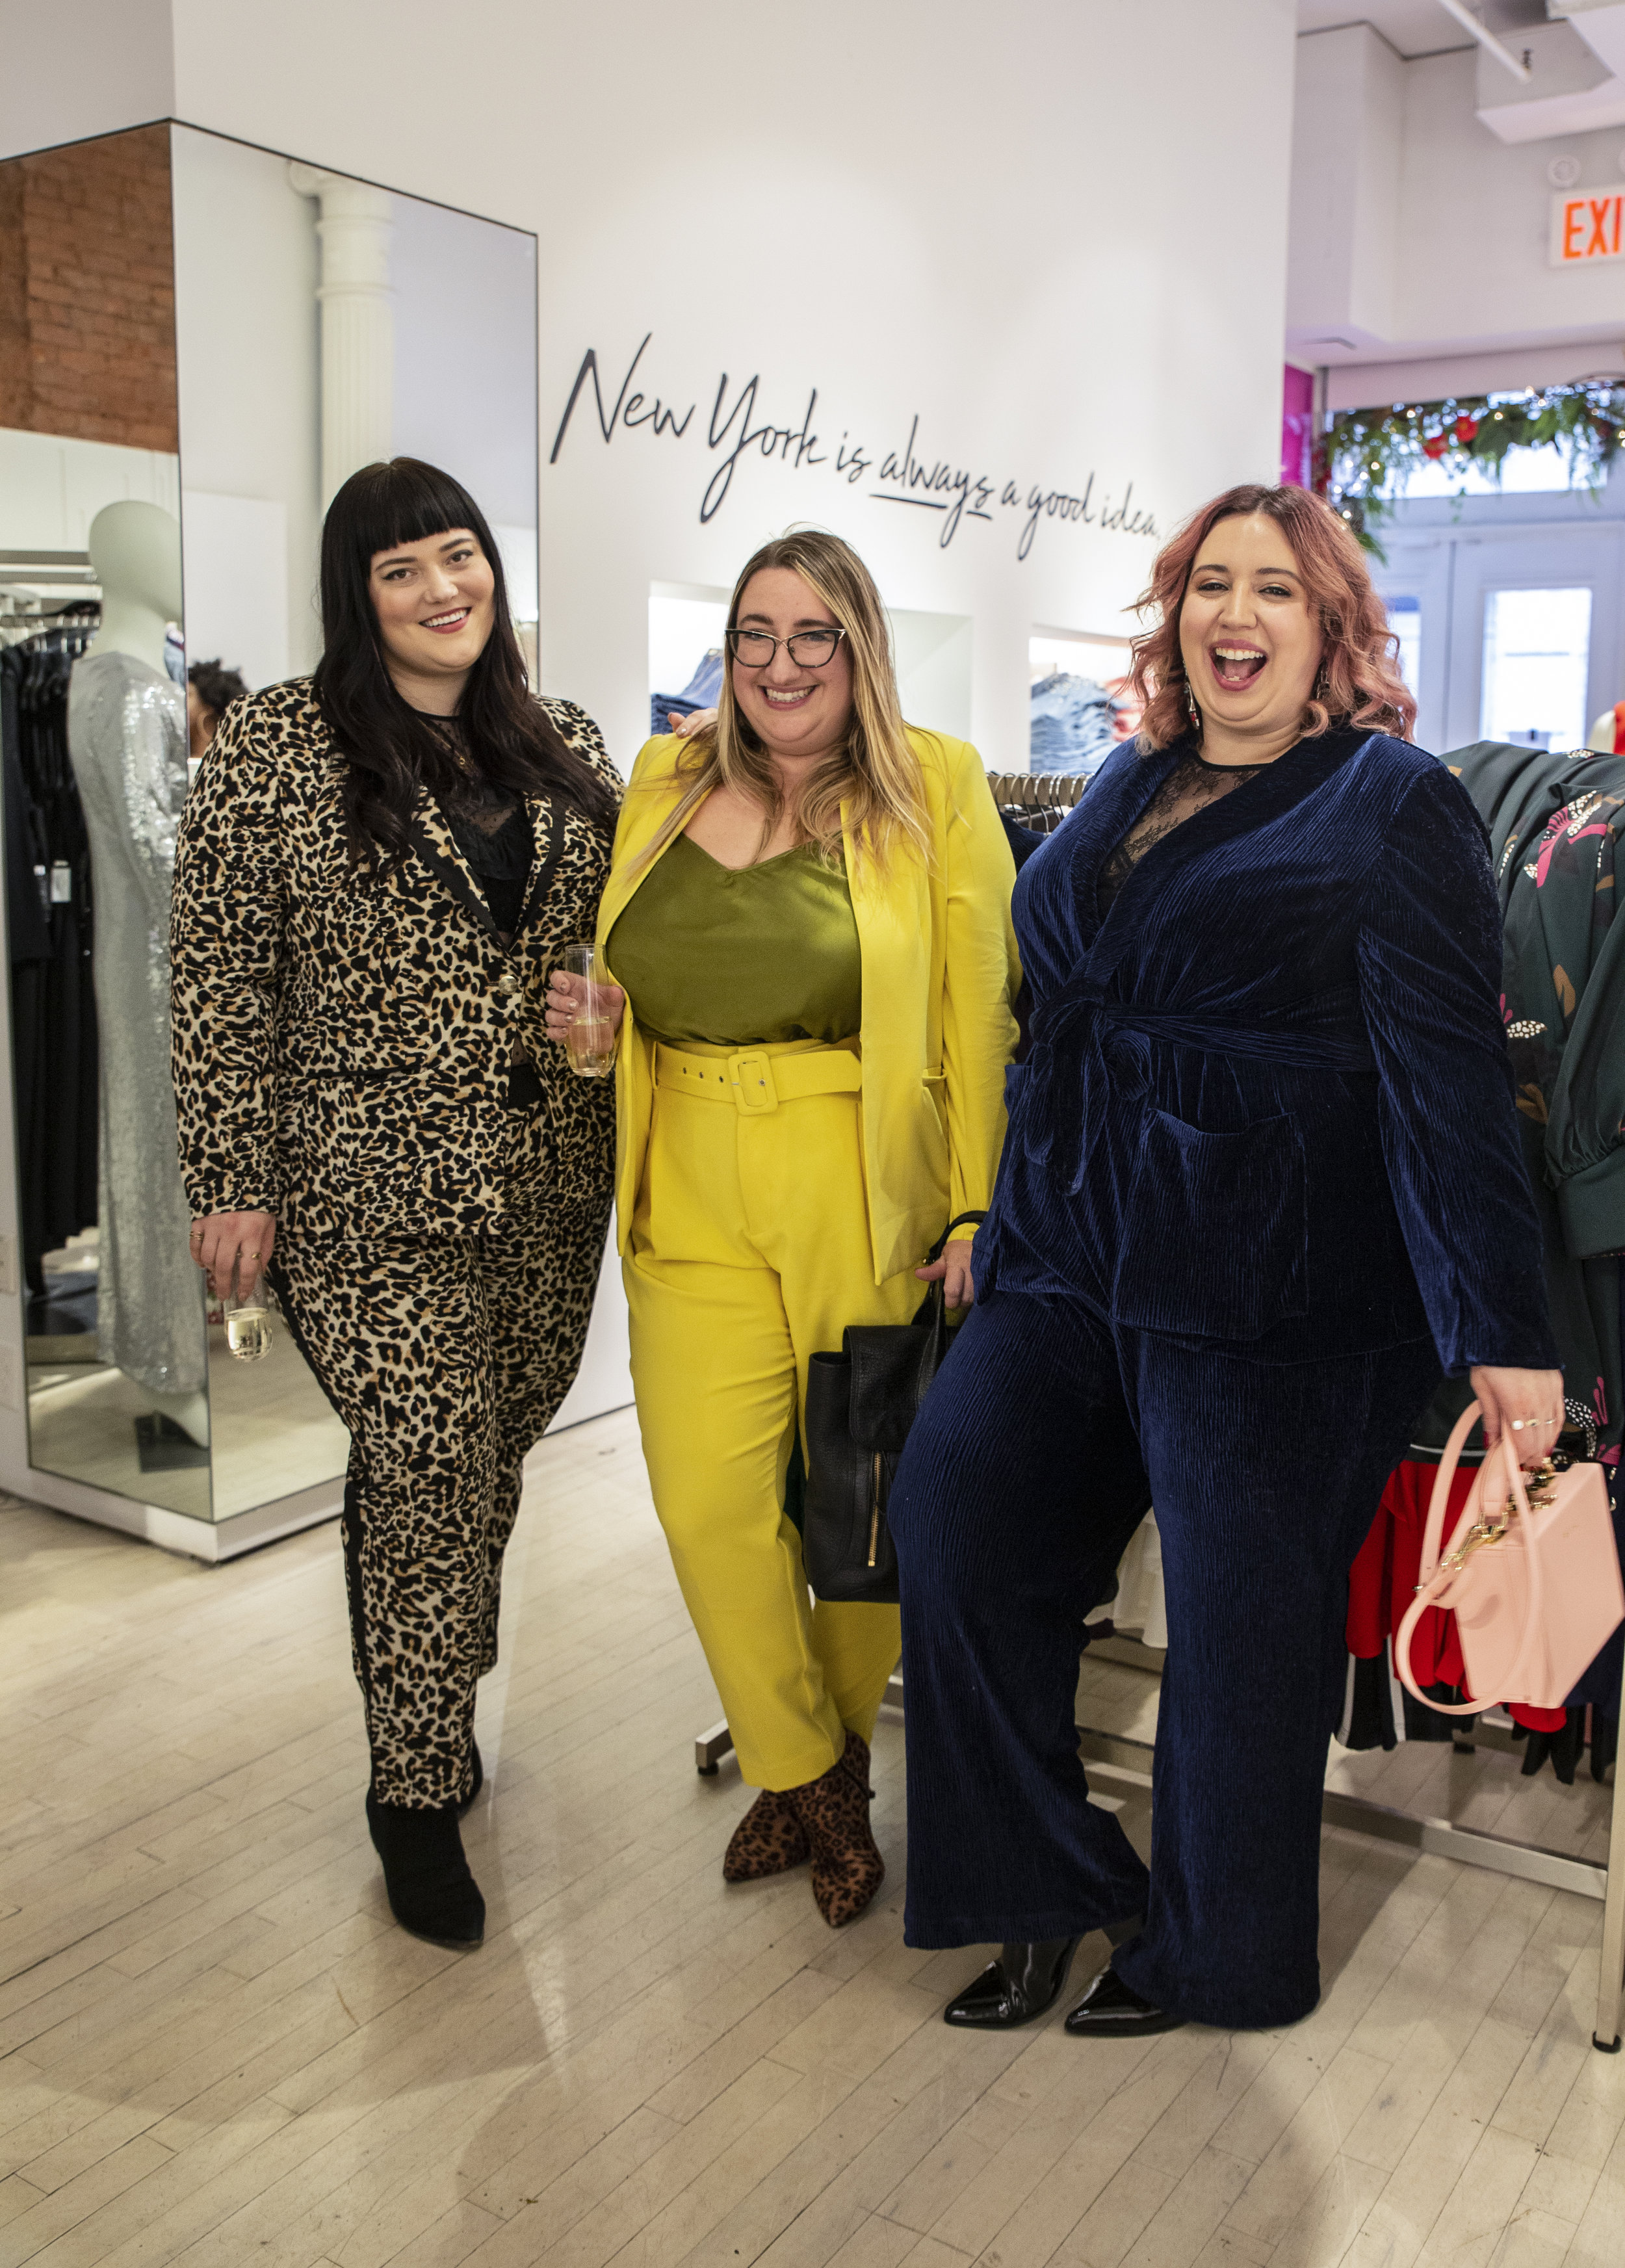 Blogger Sarah Chiwaya of  Curvily  (center) with Guest Editor Liz Black (R) and Charlotte Zoller of the ELOQUII team (L)